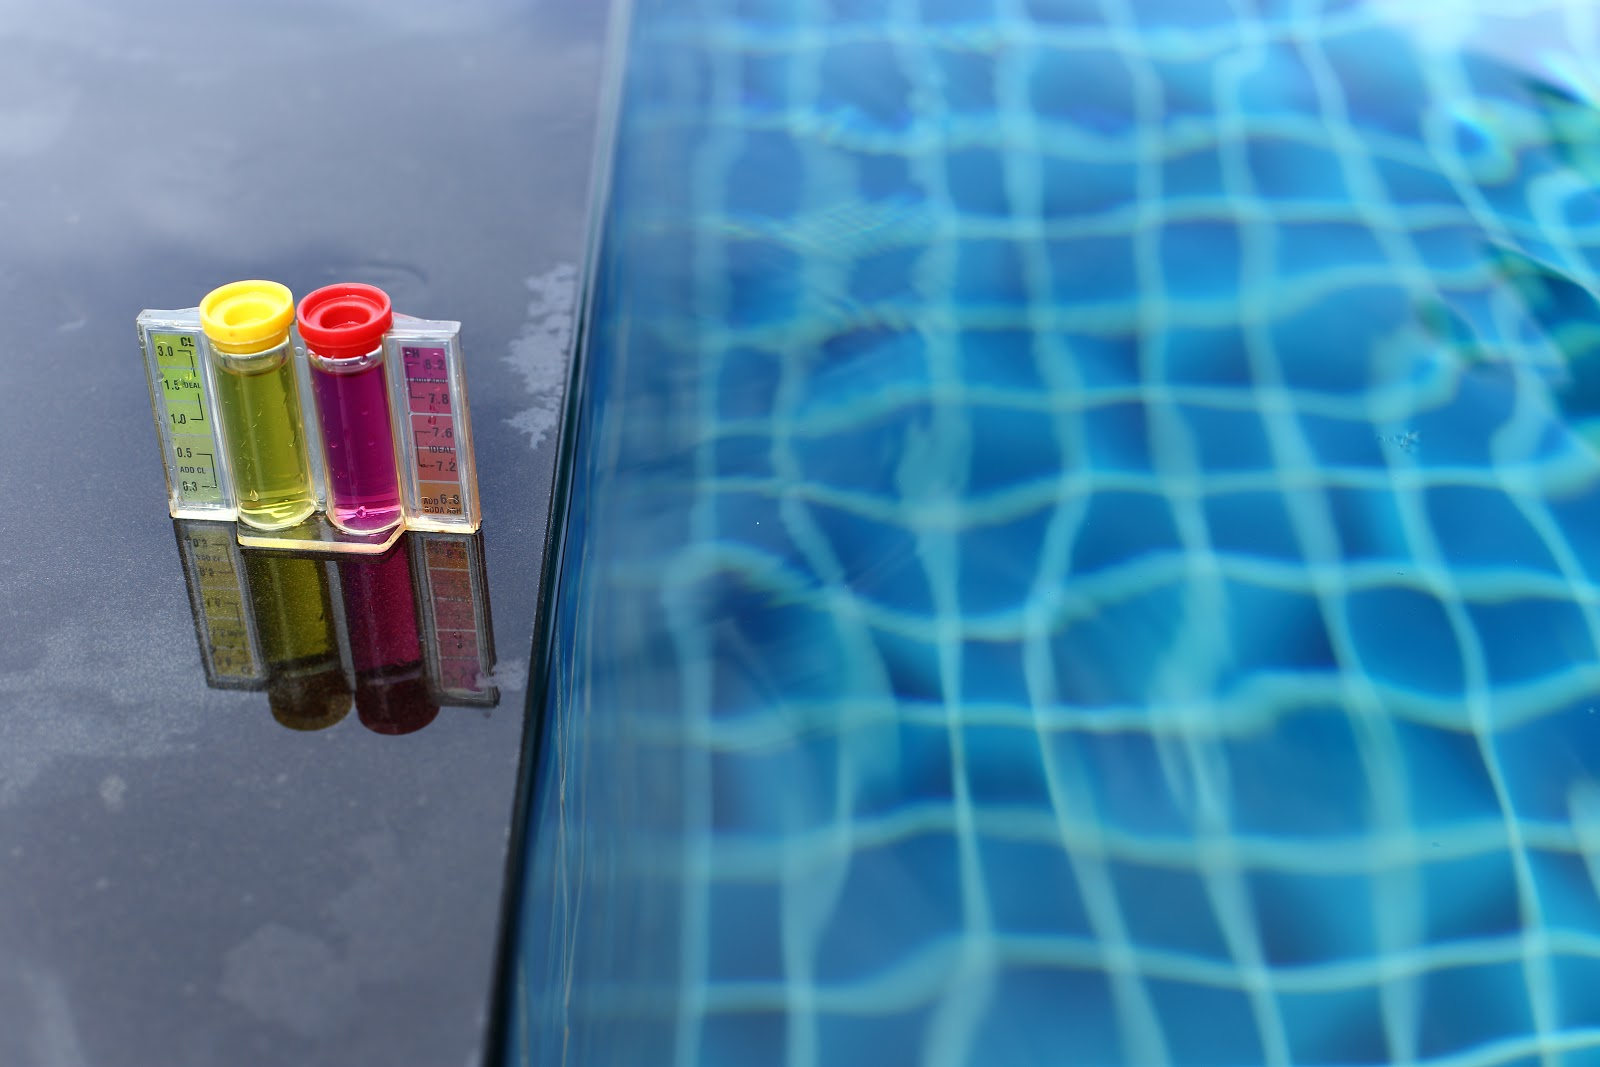 a yellow and pink test kit next to an inground pool checking for CYA levels in the water